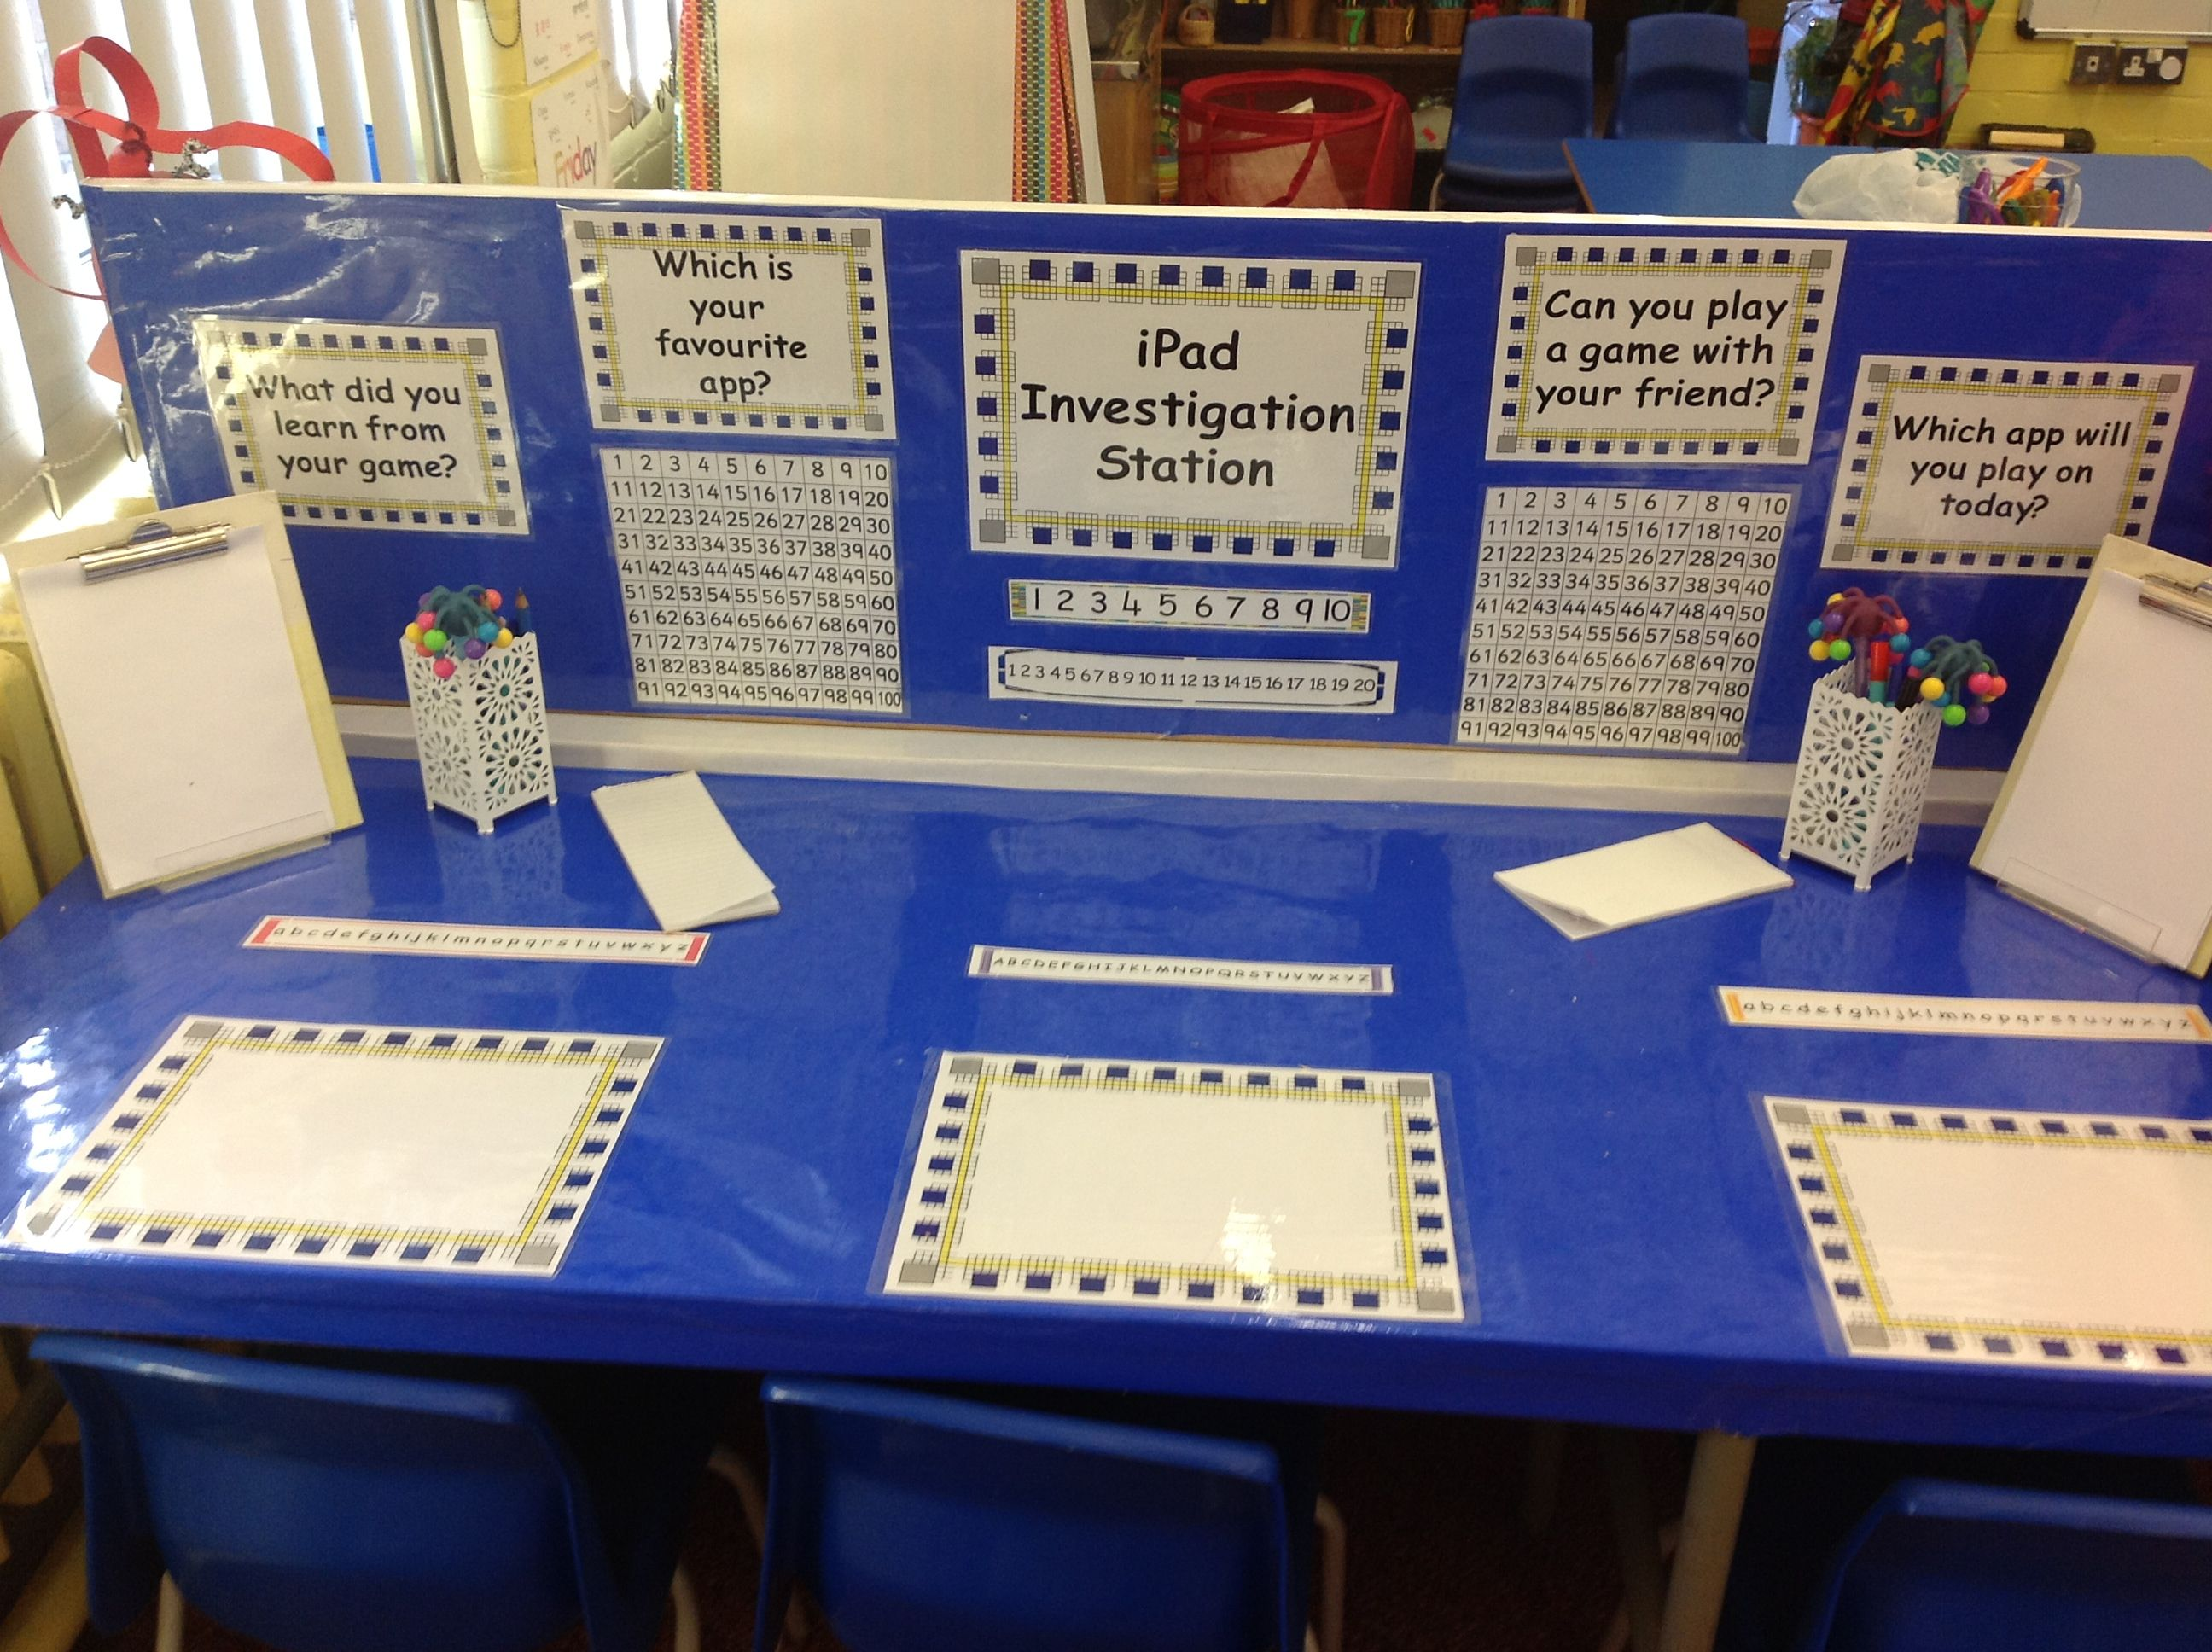 iPad Investigation Station named by the children